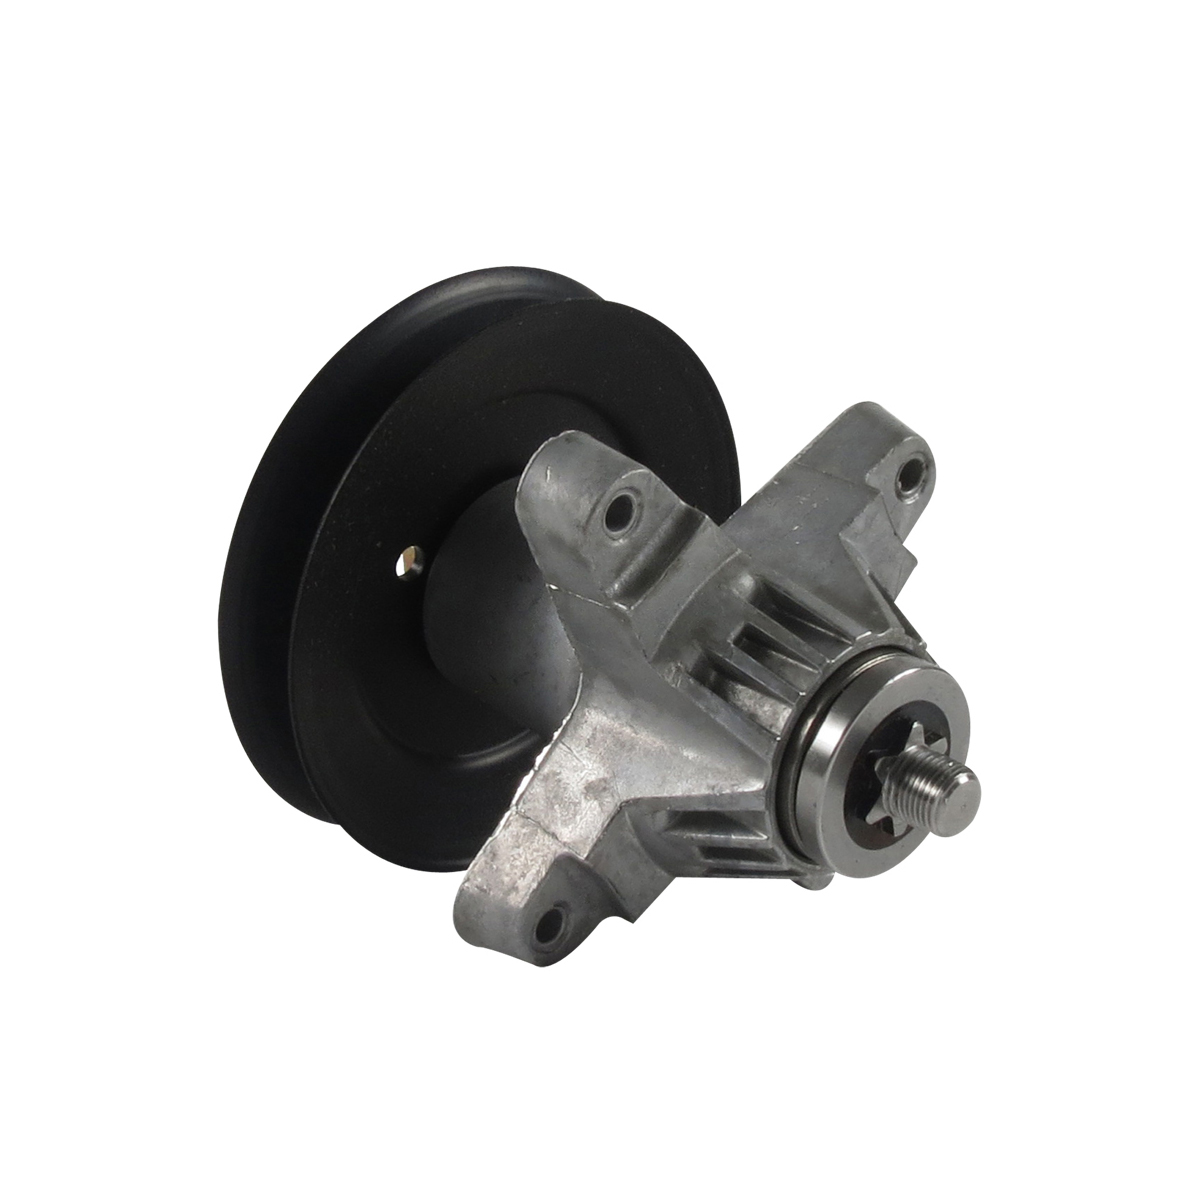 Pulley & Spindle Assembly 918-04125C